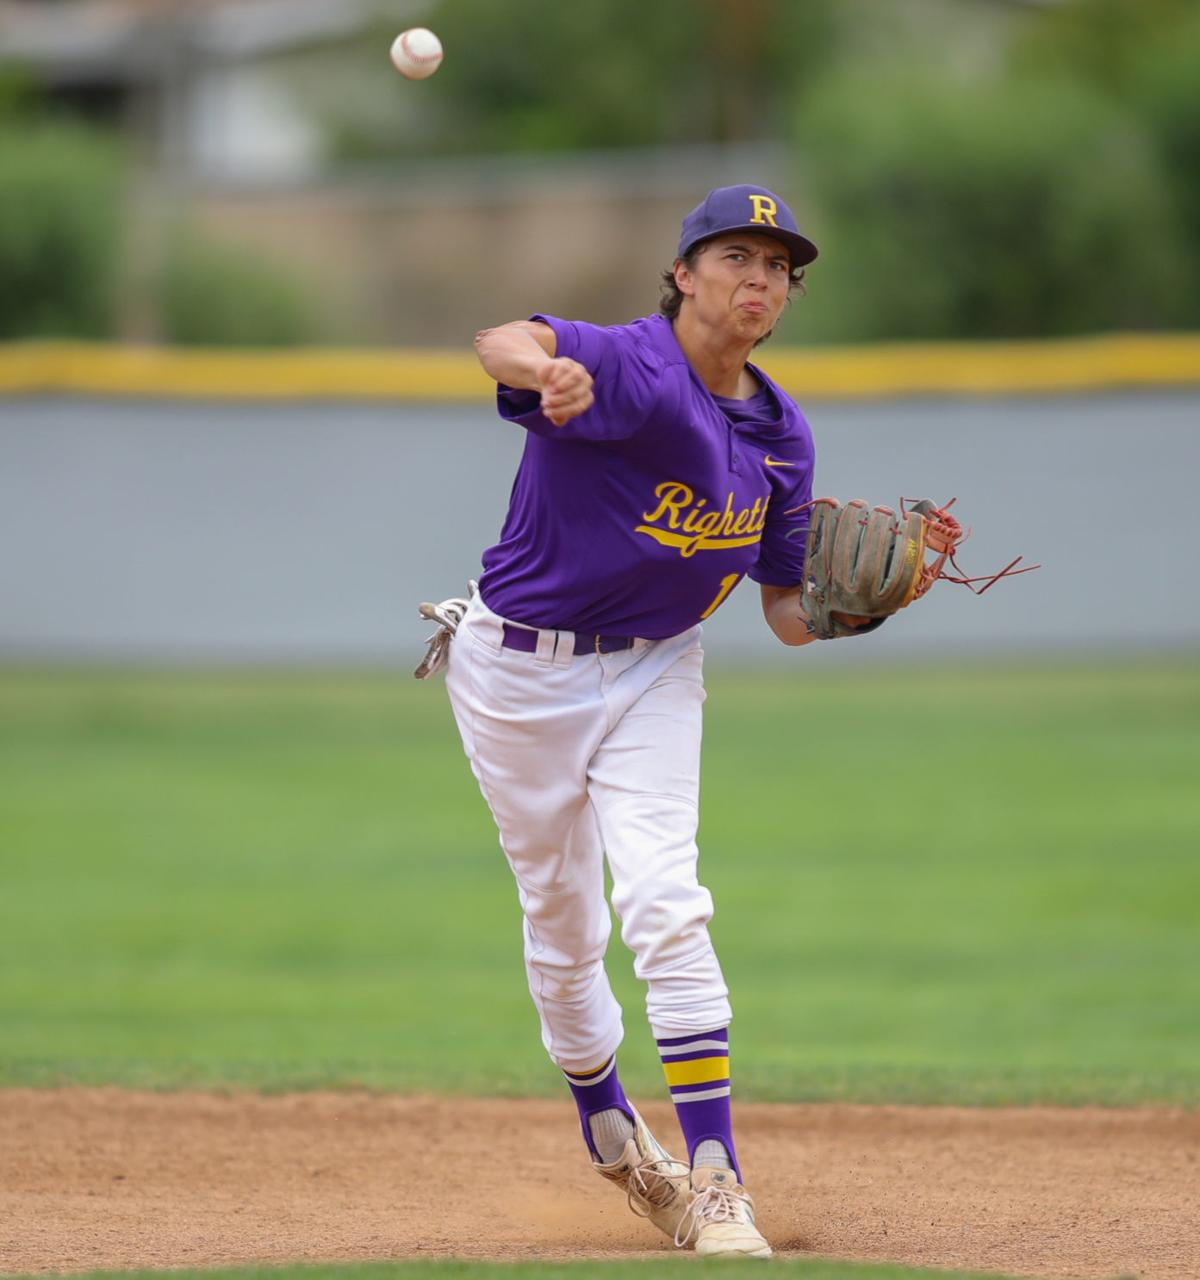 051519 Righetti vs Frontier 03.jpg